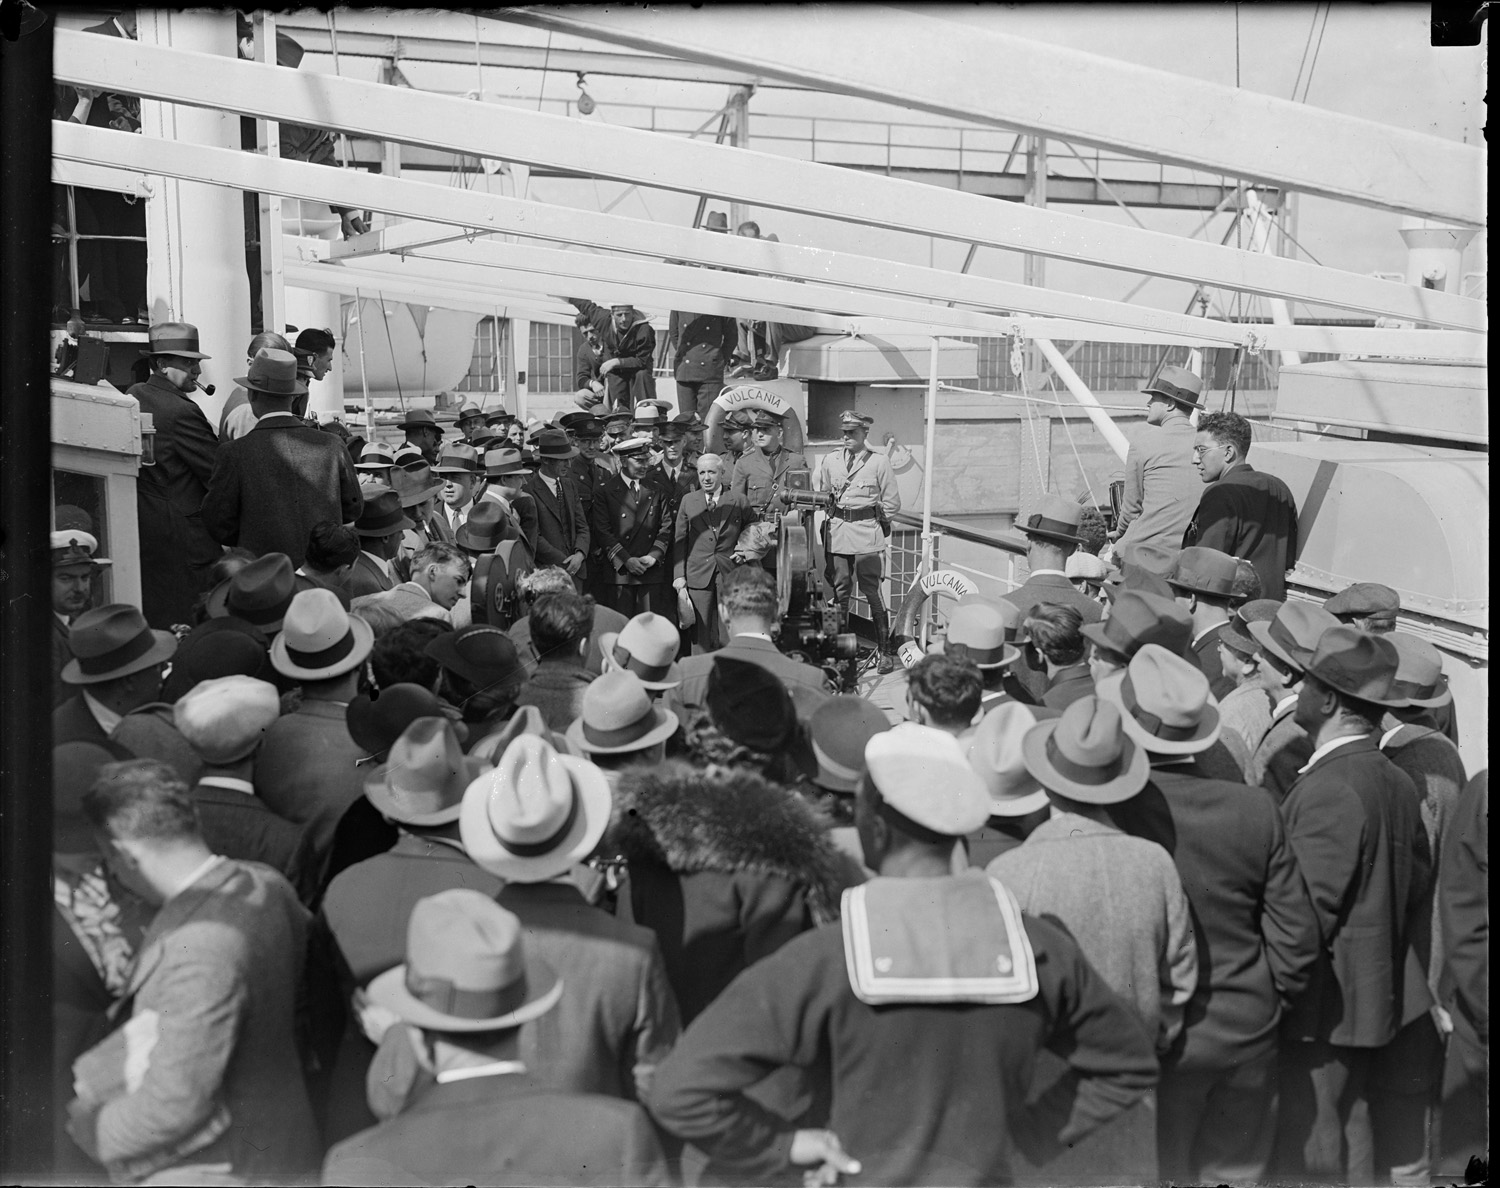 Charles Ponzi delivered to the SS Vulcania for Deportation, 1934